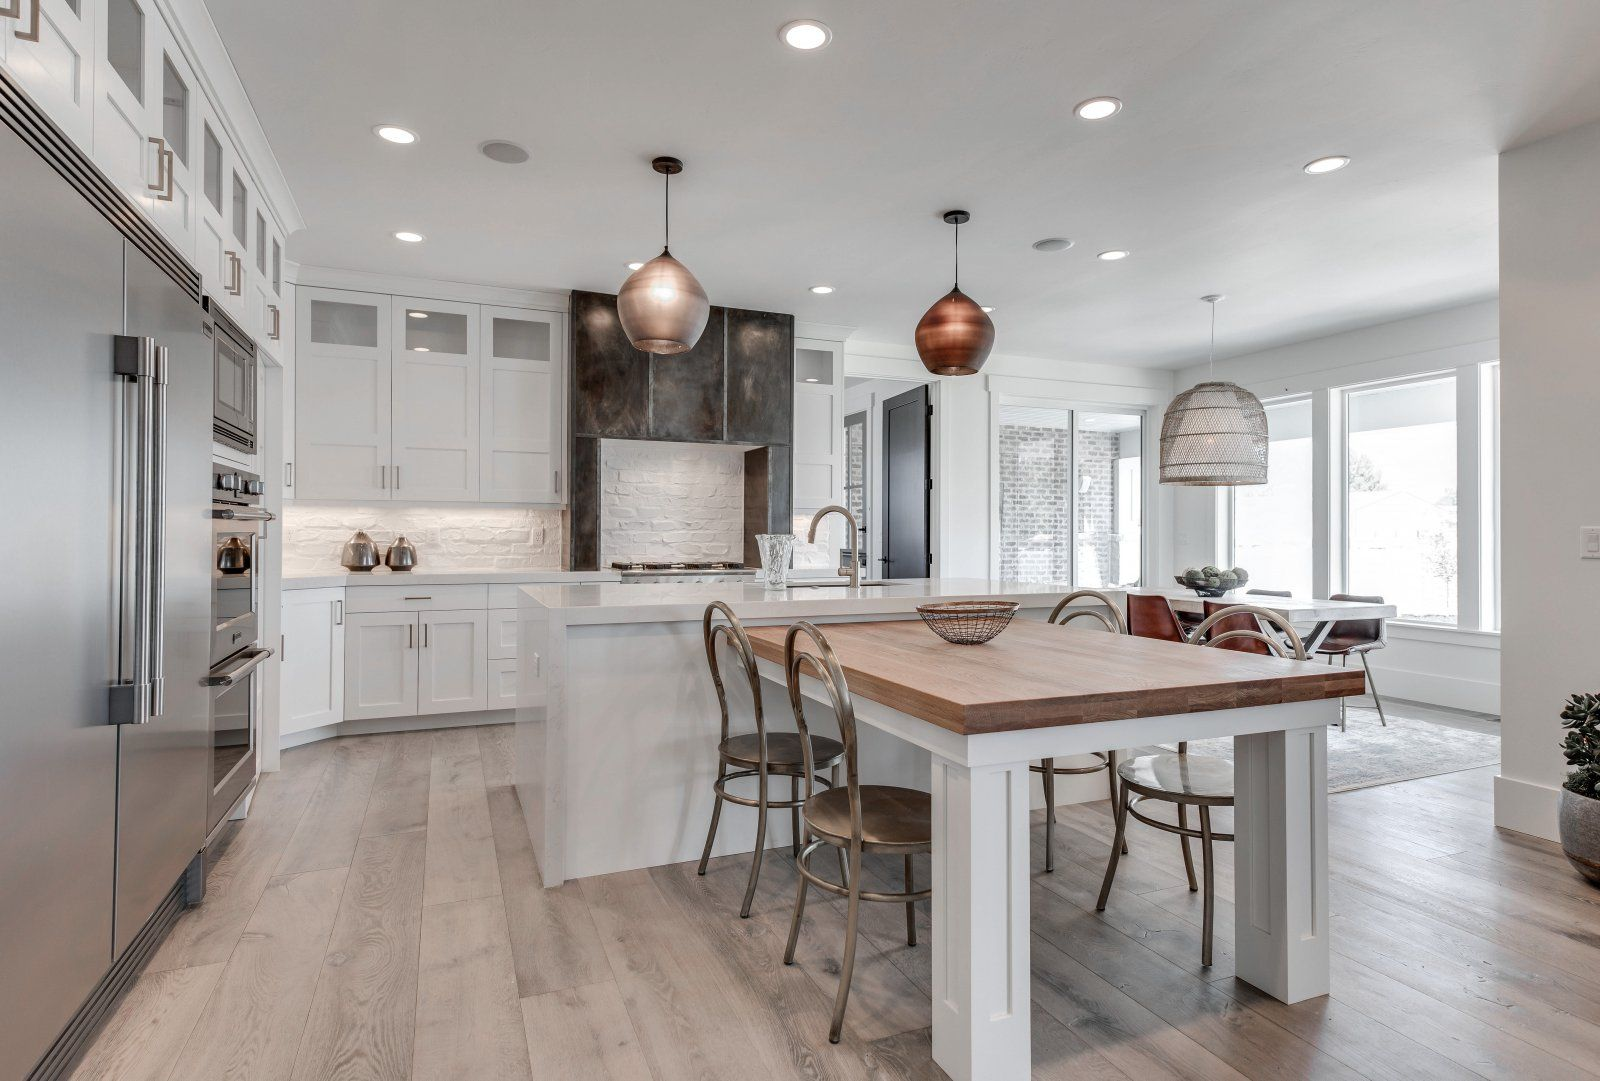 J Craft   Salt Lake Parade Of Homes 2016   I Love The Color Of The Flooring  And The Cabinets